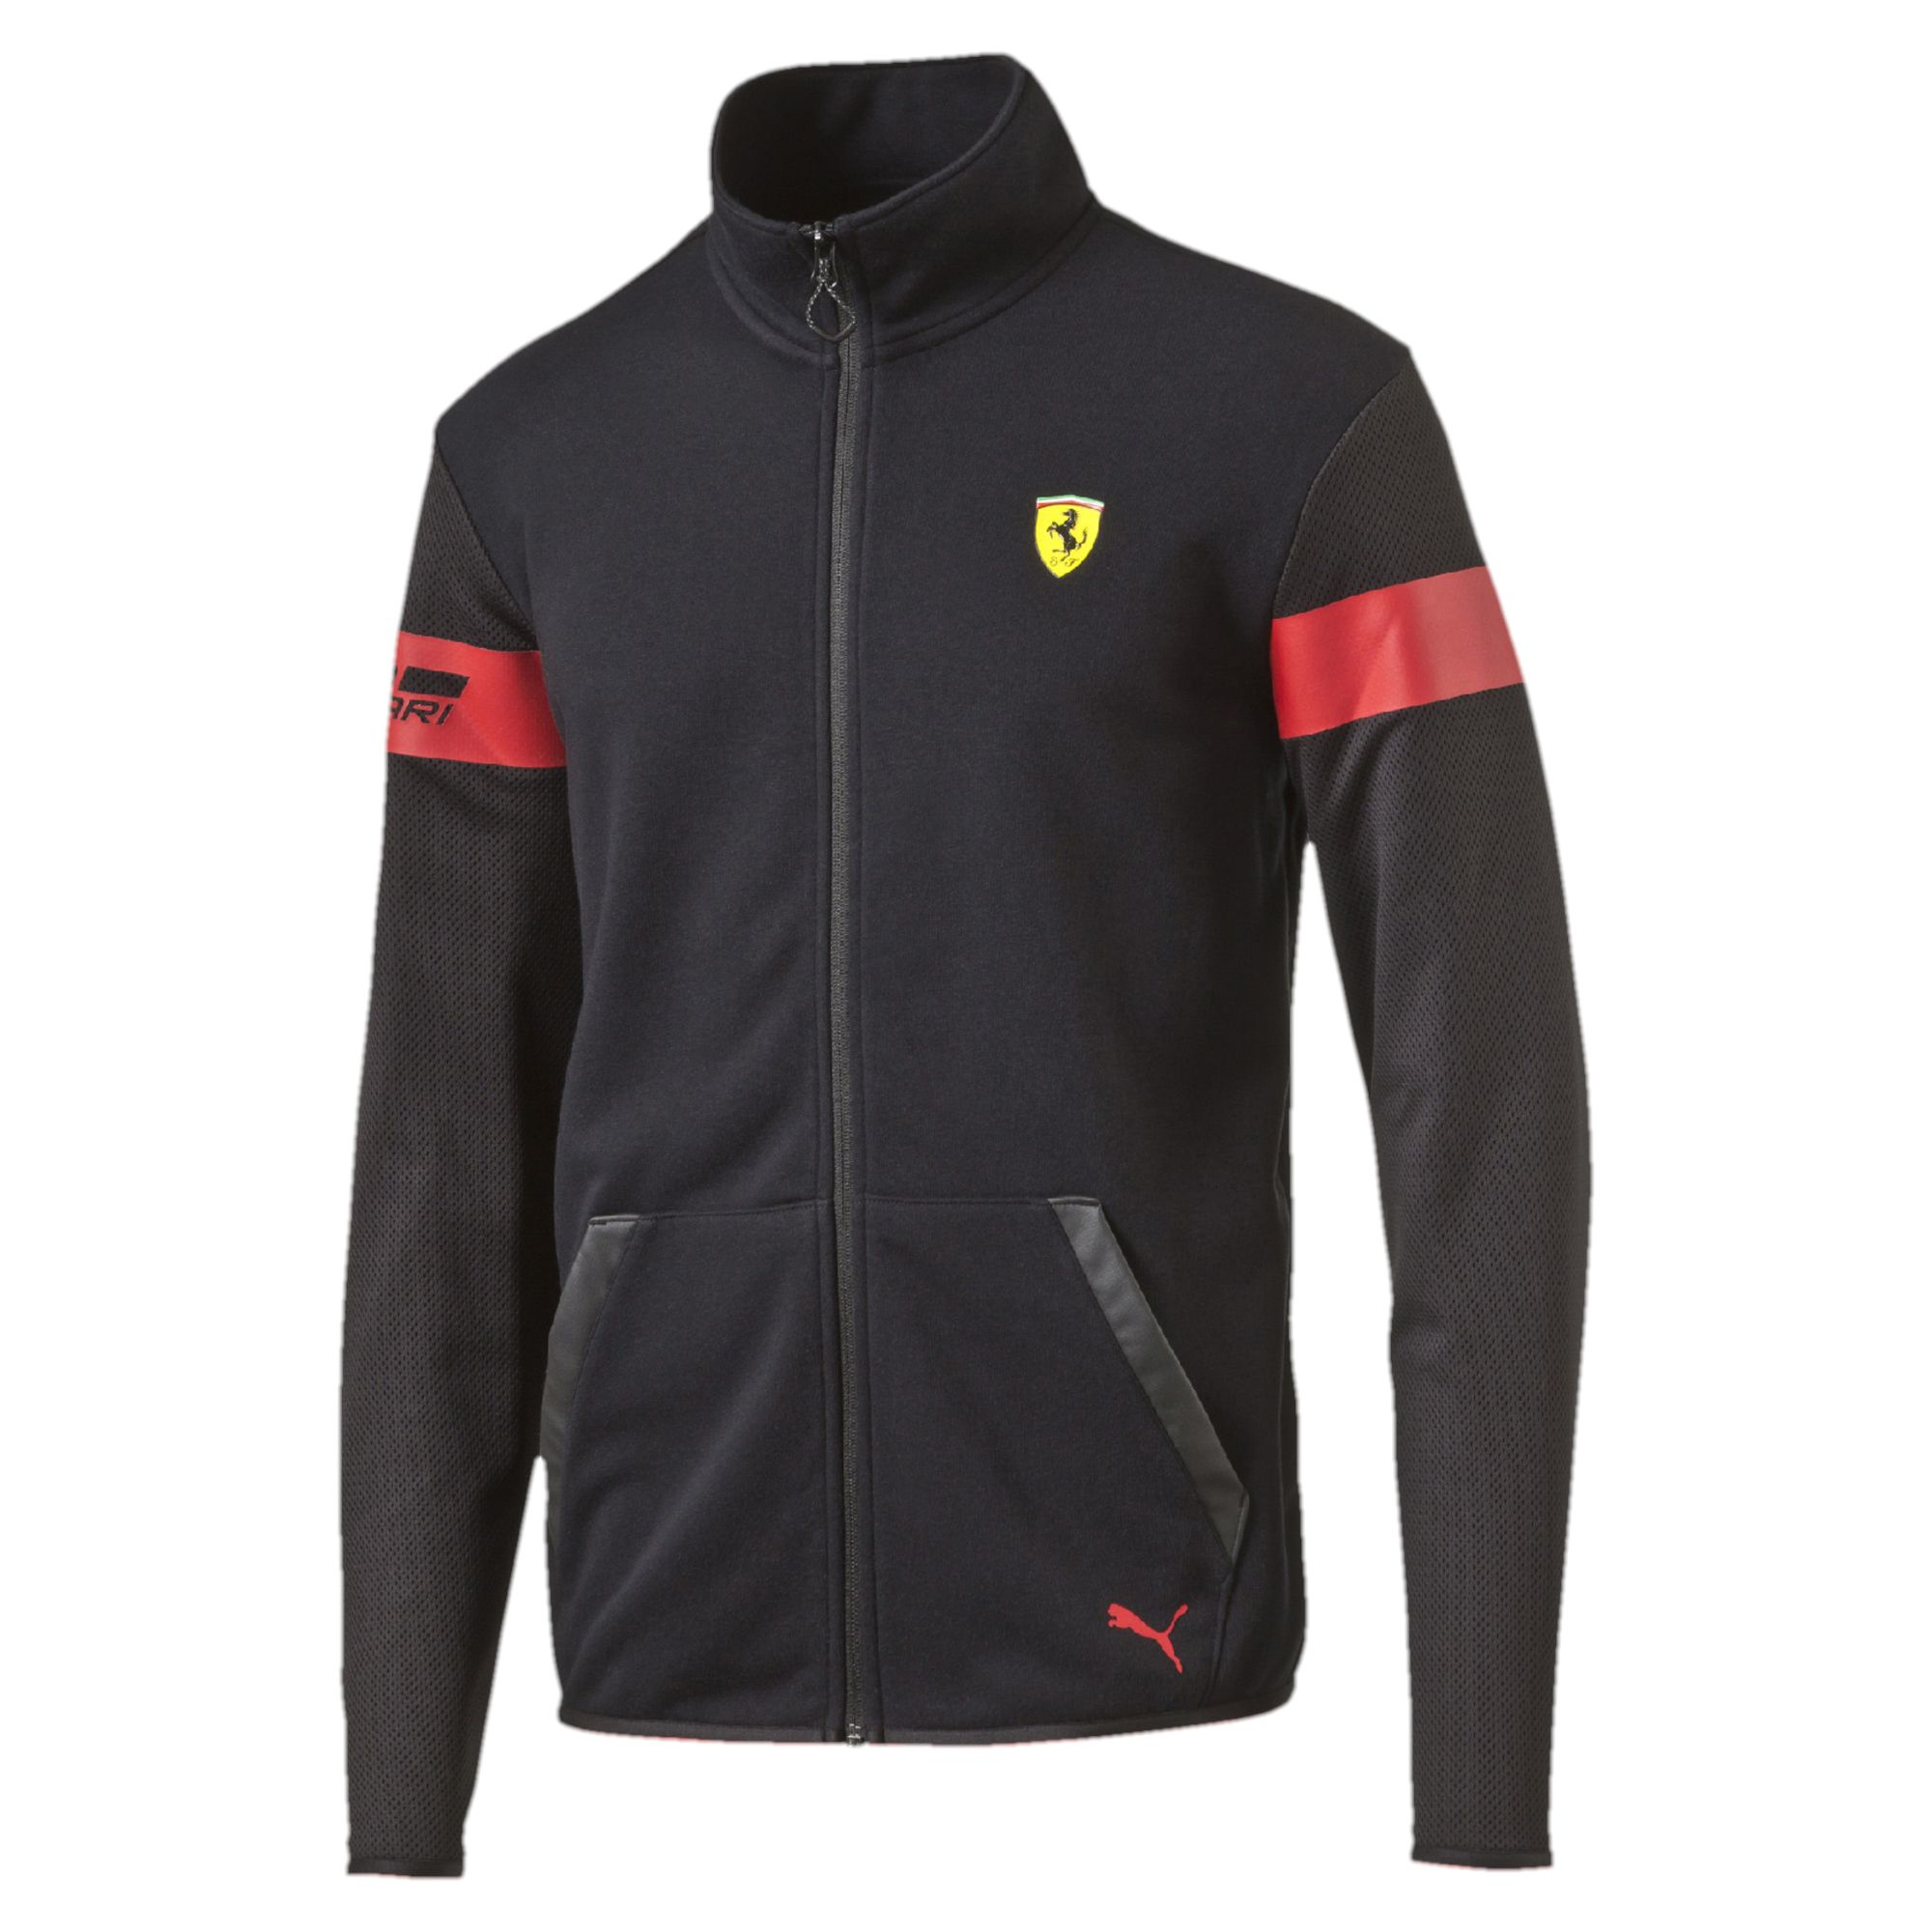 Puma Ferrari Jacket In Black For Men Lyst